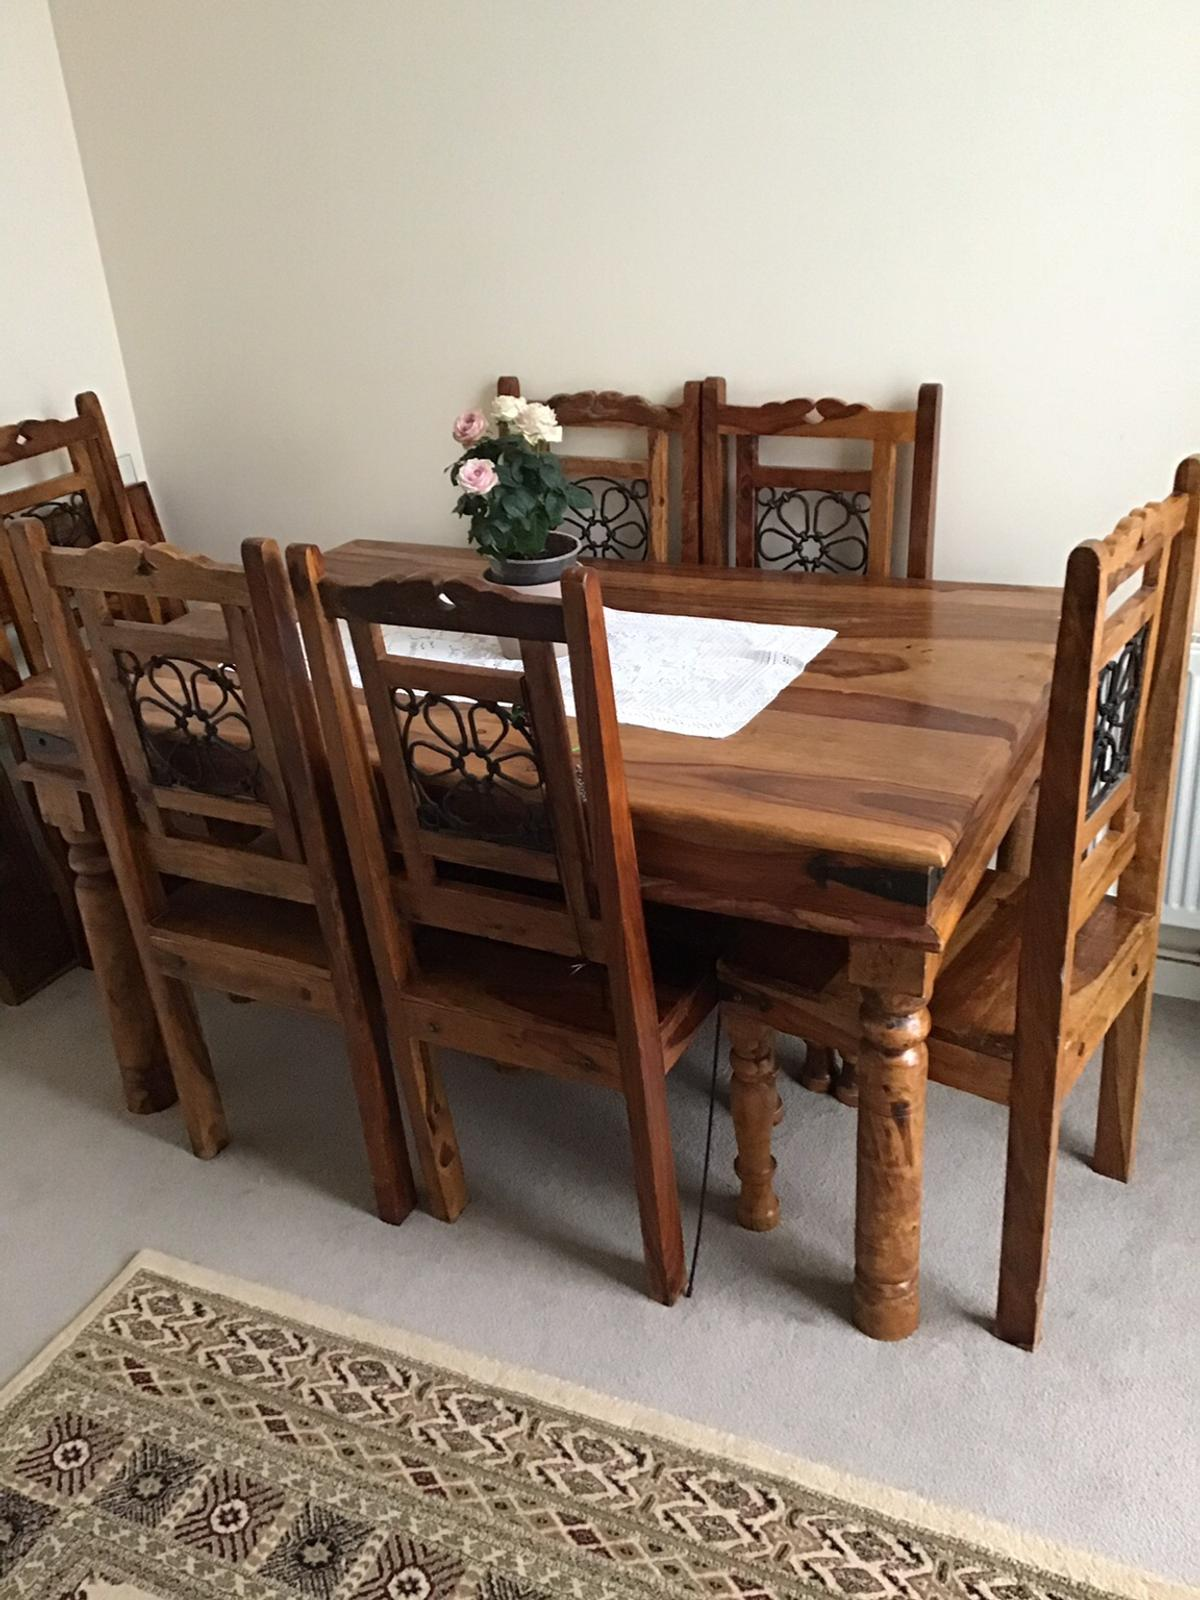 Stupendous Expensive Jali Dining Table 6 Chairs Forskolin Free Trial Chair Design Images Forskolin Free Trialorg